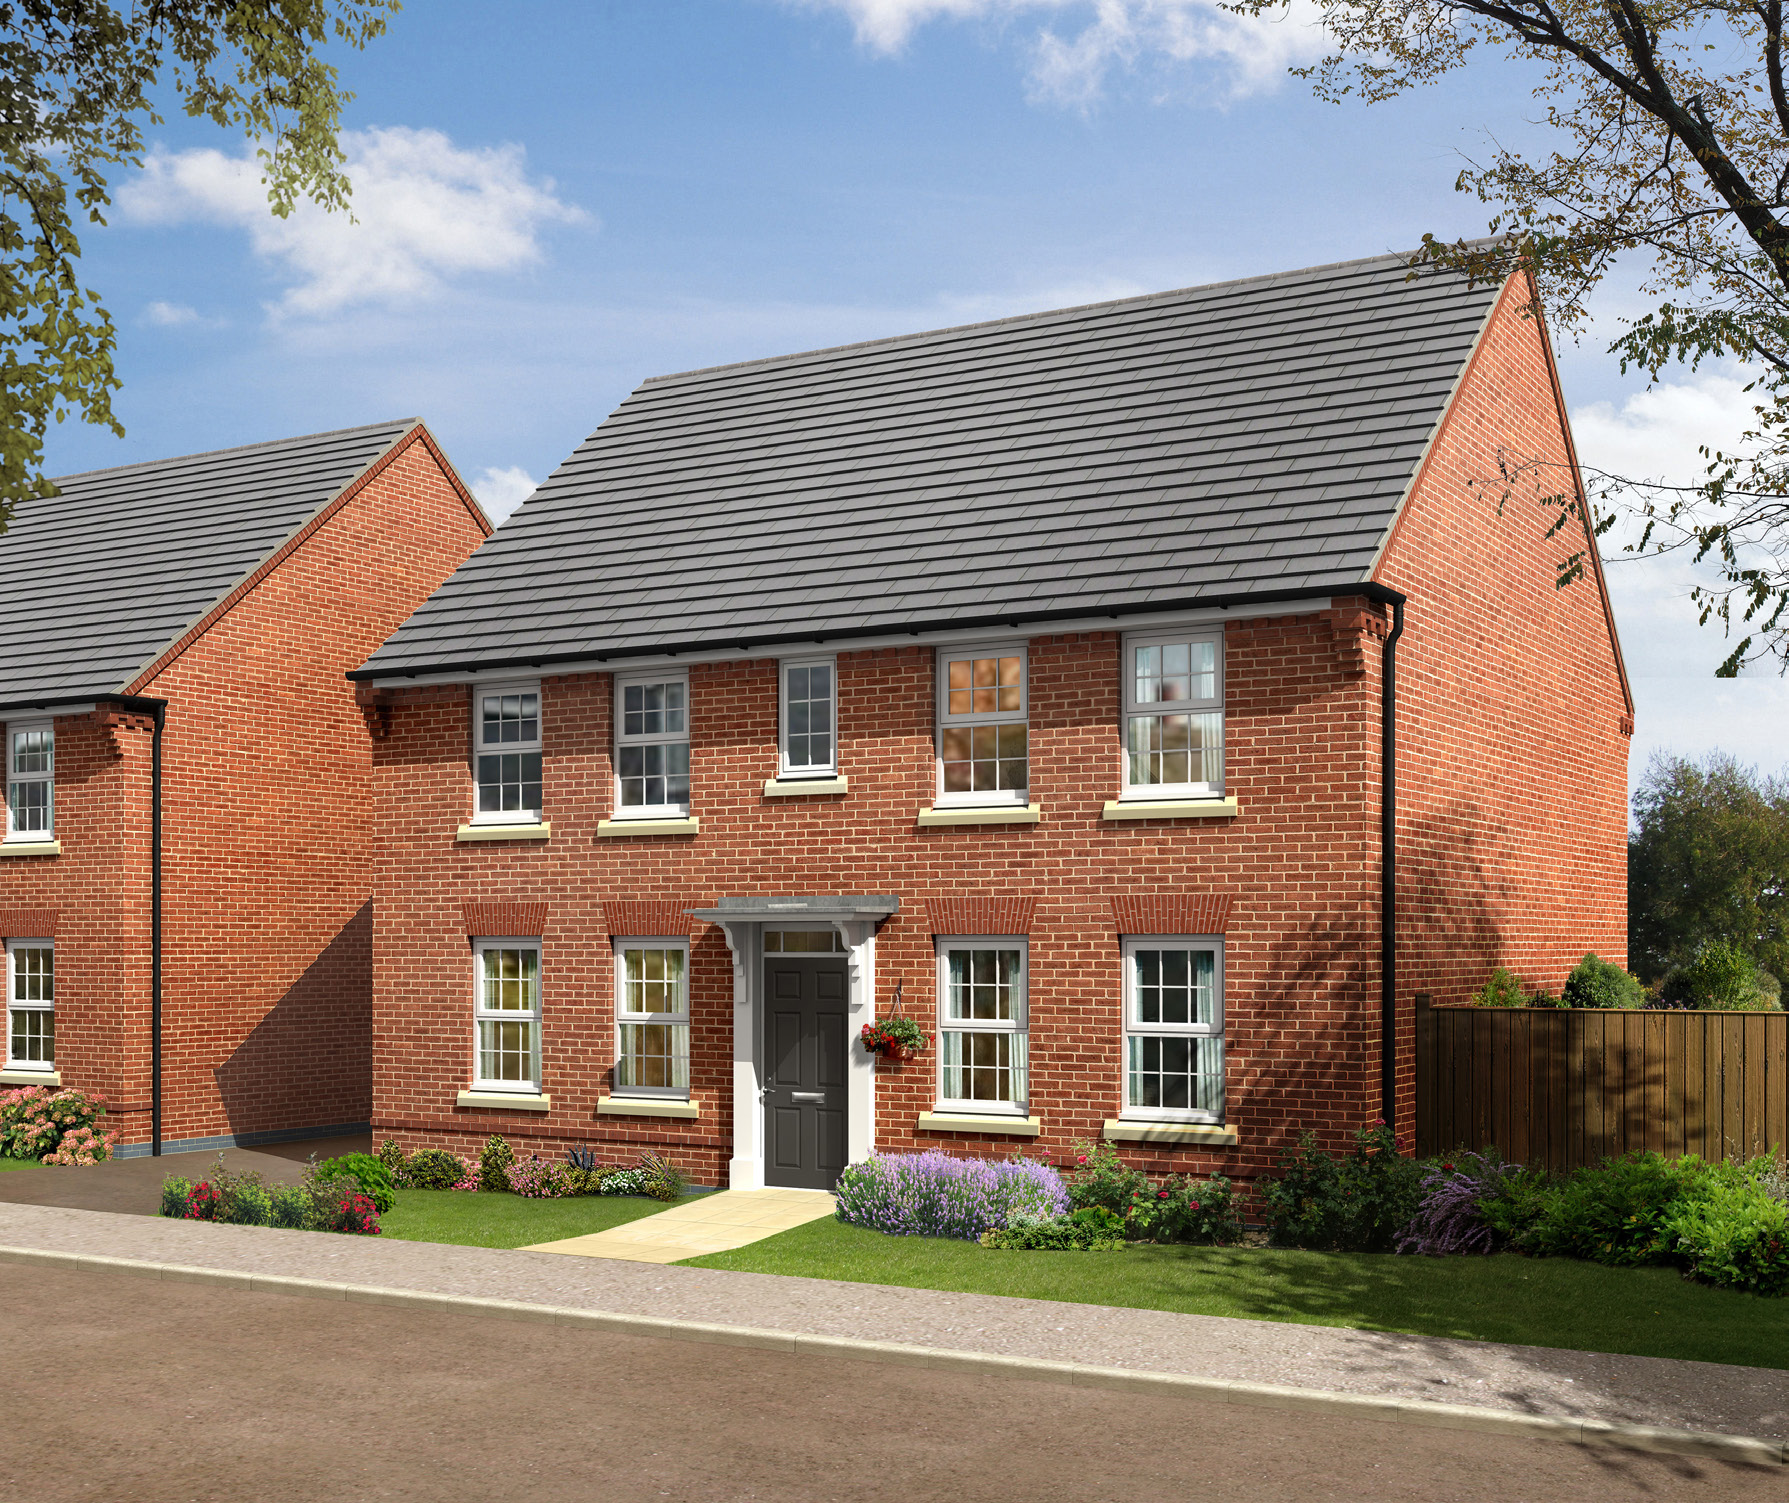 4 Bedroom Detached House For Sale In Lincoln